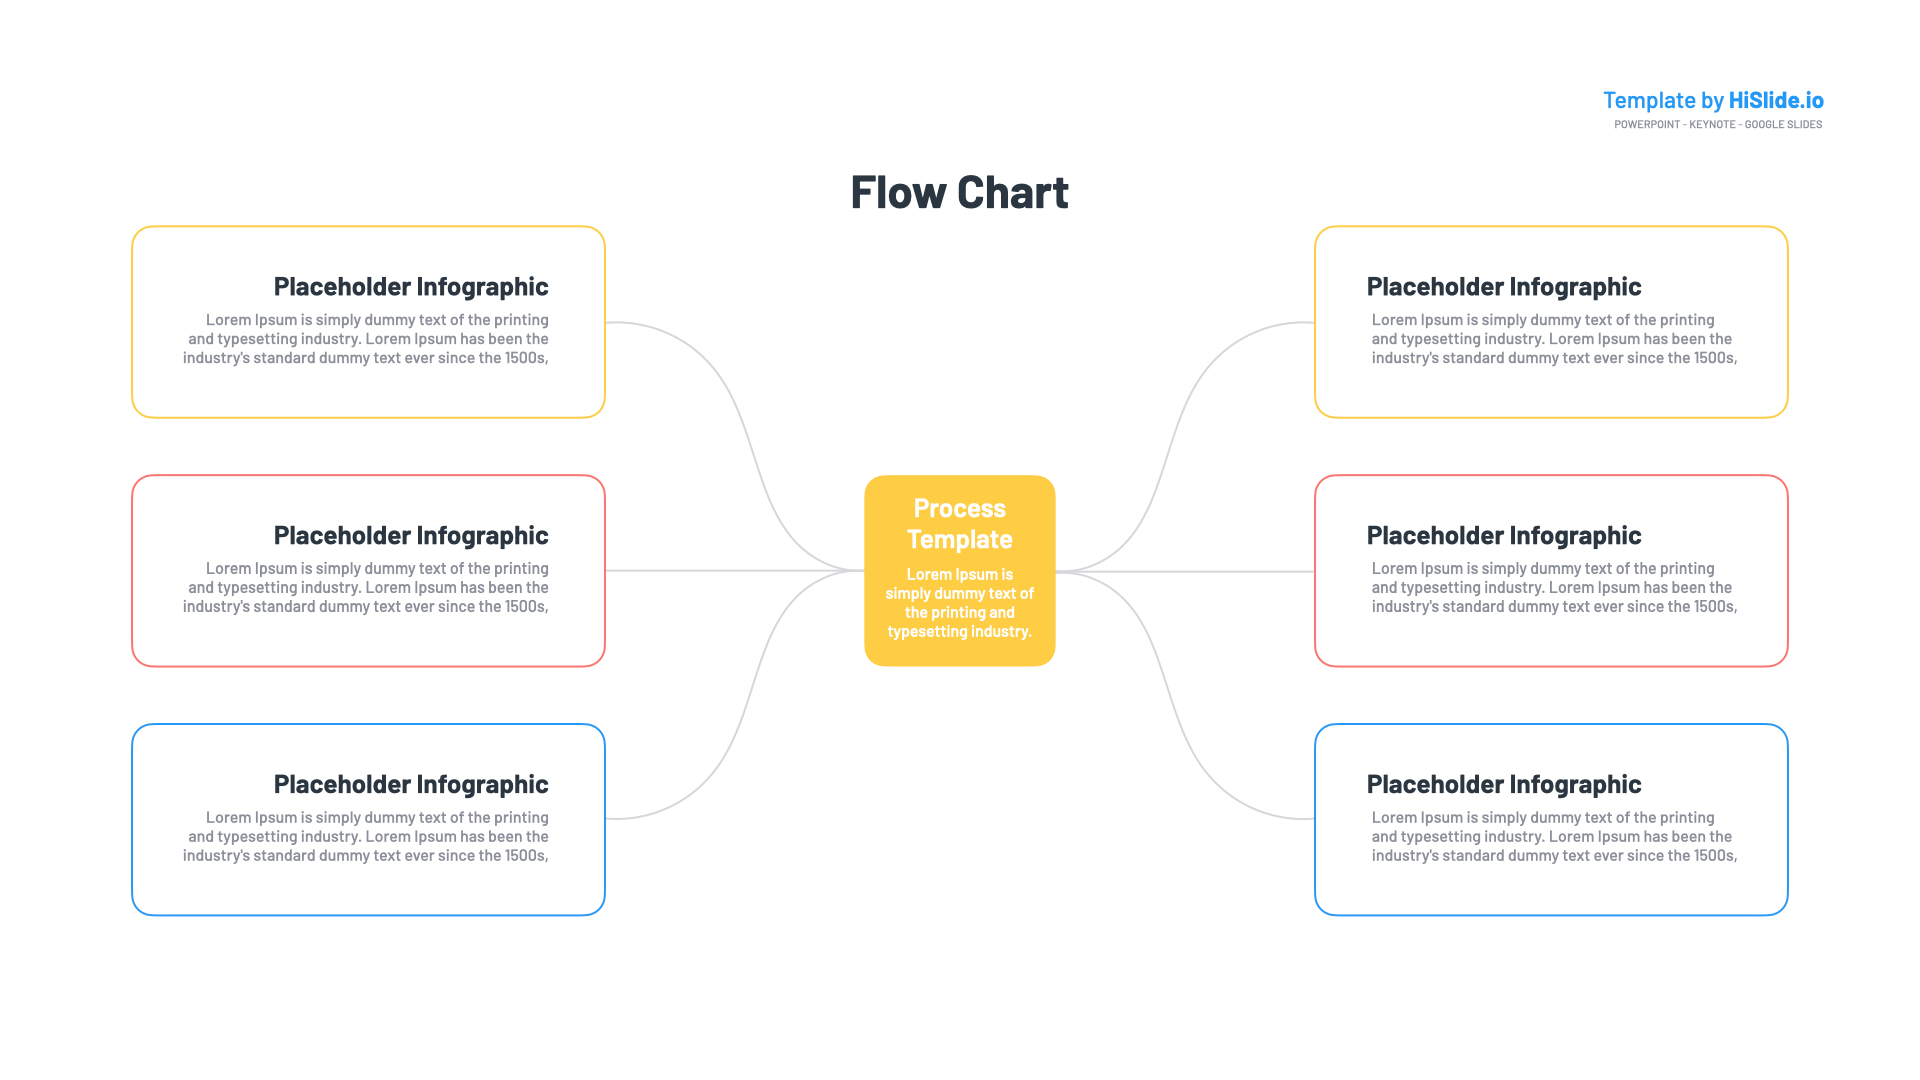 Process Flow chart Google slides template free